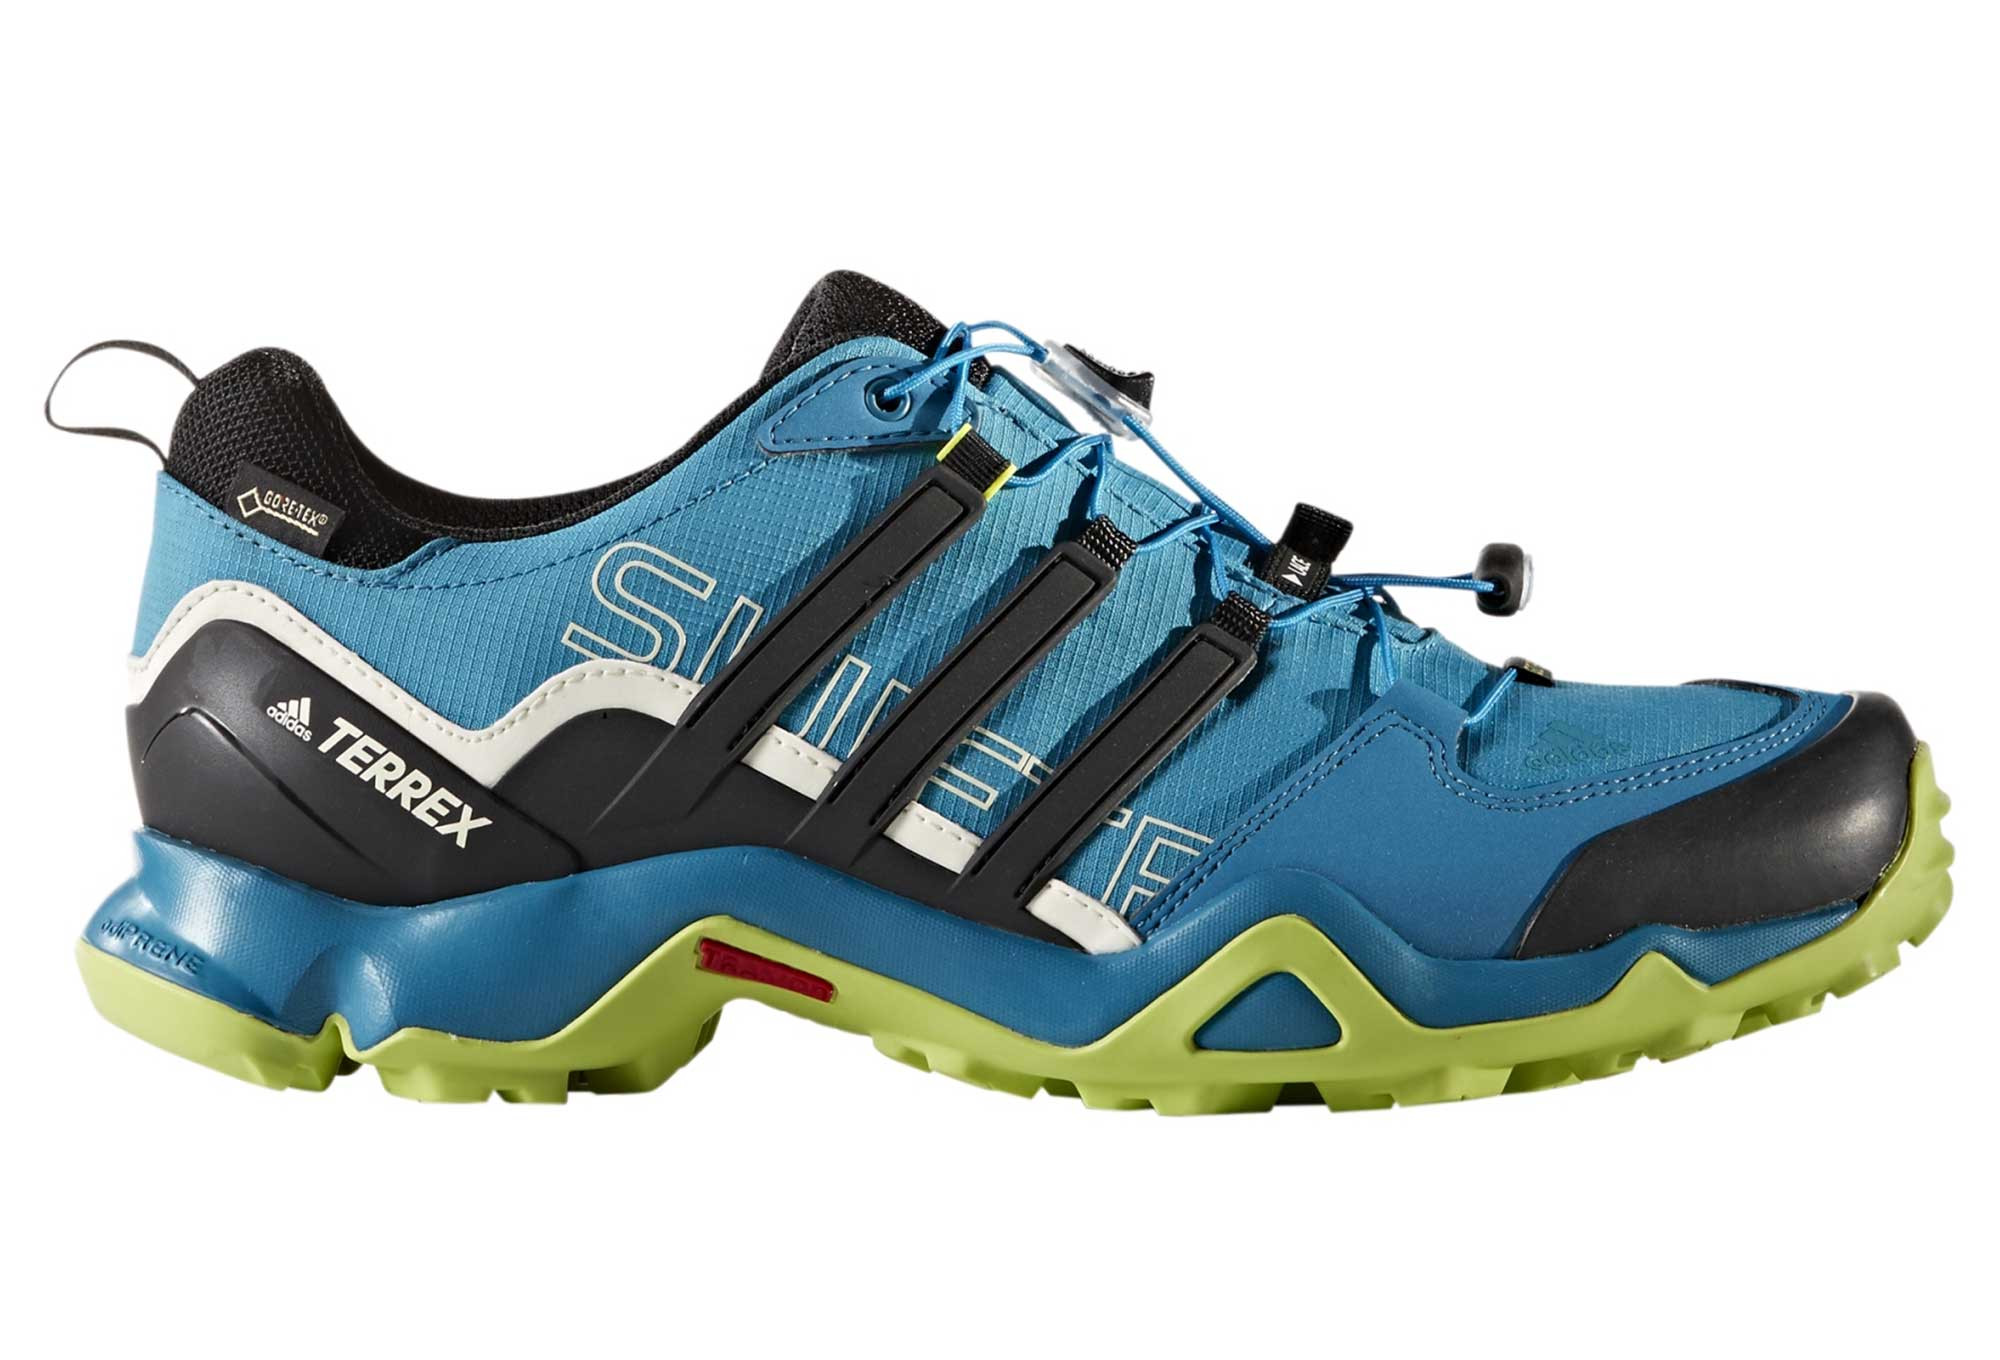 Adidas Terrex Swift R Gtx Hombre Increíble Adidas Running Terrex Swift R Gtx Blue Yellow Men Of 47  Magnífica Adidas Terrex Swift R Gtx Hombre